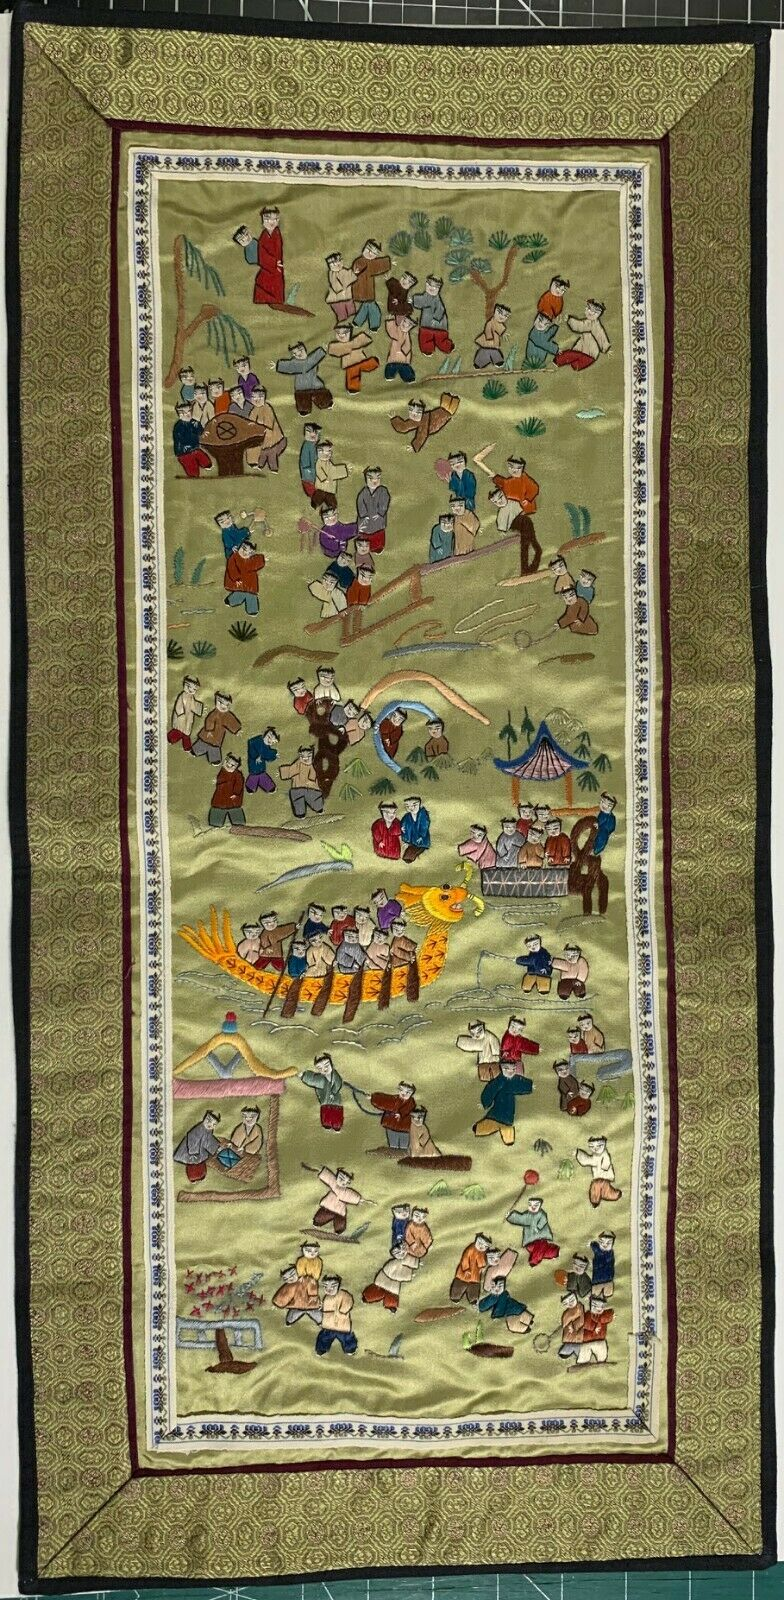 Antique Chinese Silk Hand-Embroidered Panel - Stitched Asian Textile 20th C - $99.99